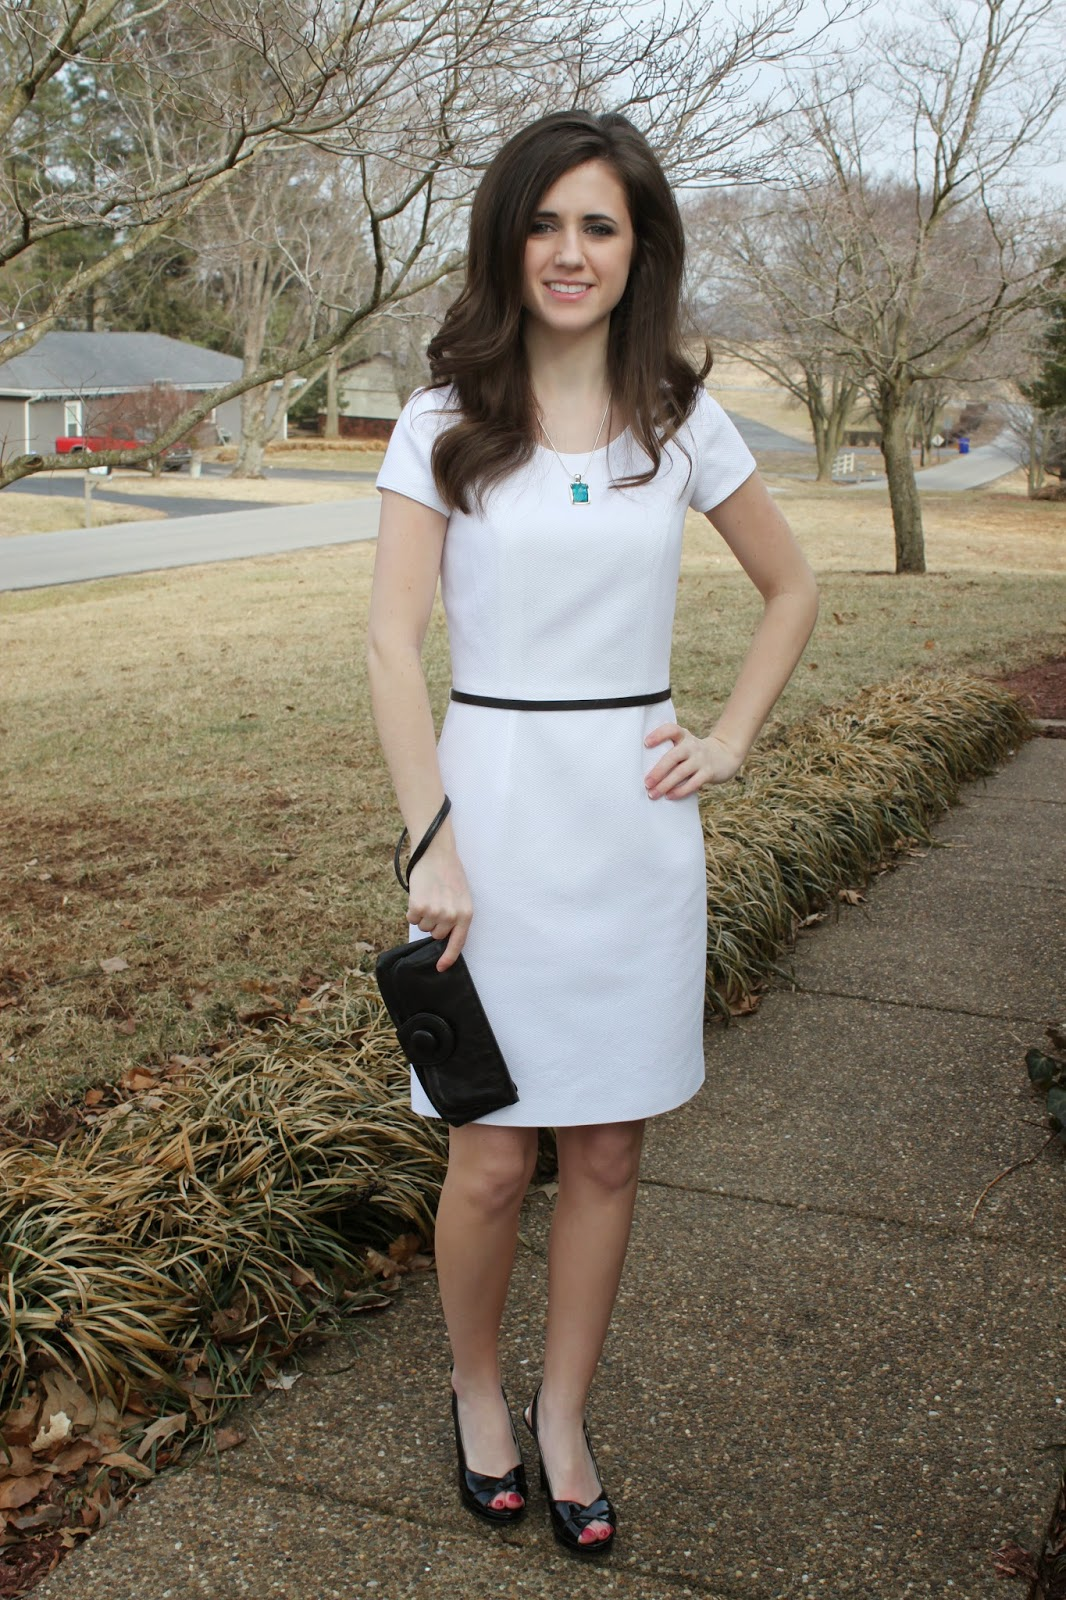 http://janmade.blogspot.com/2014/02/little-white-dress-contest.html